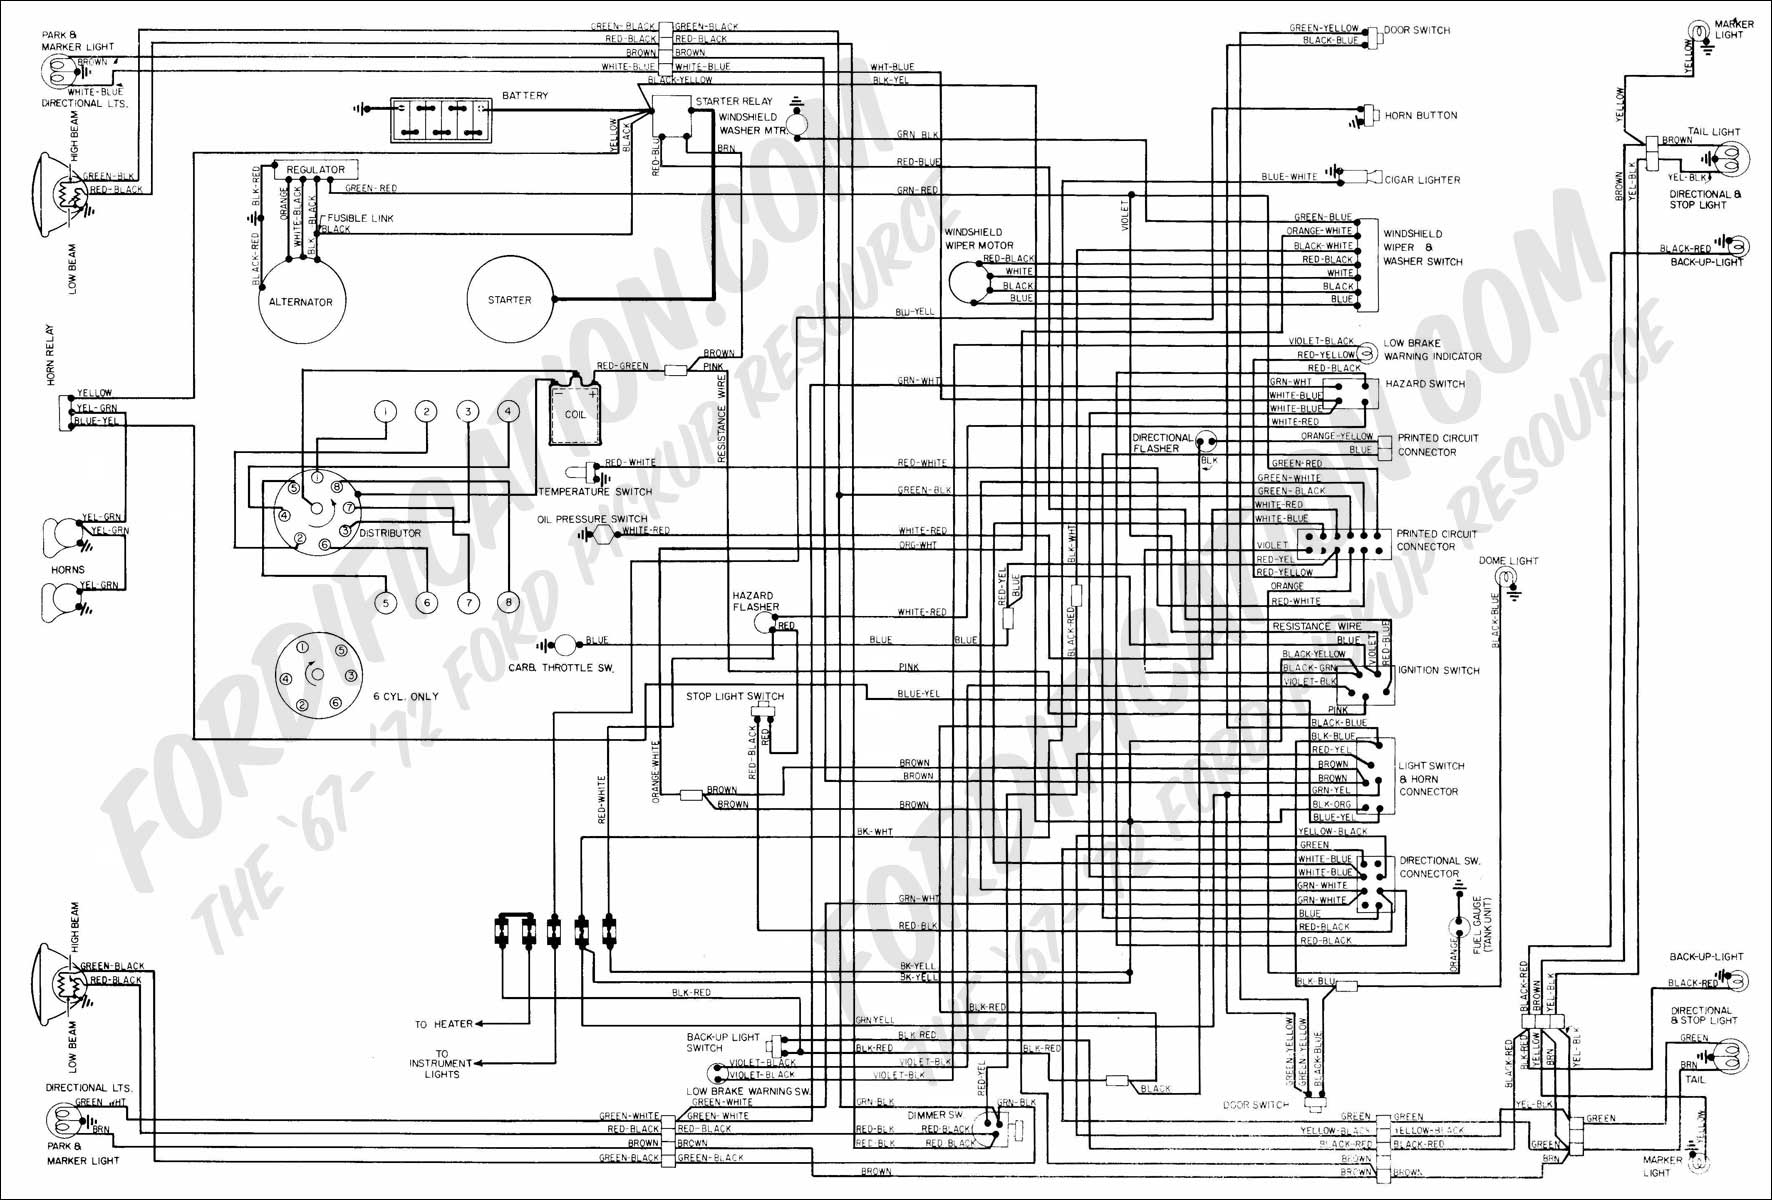 wiring diagram 72_quick 2005 ford f 150 ke wiring diagram wiring diagram simonand 2015 f150 wiring diagram at bakdesigns.co